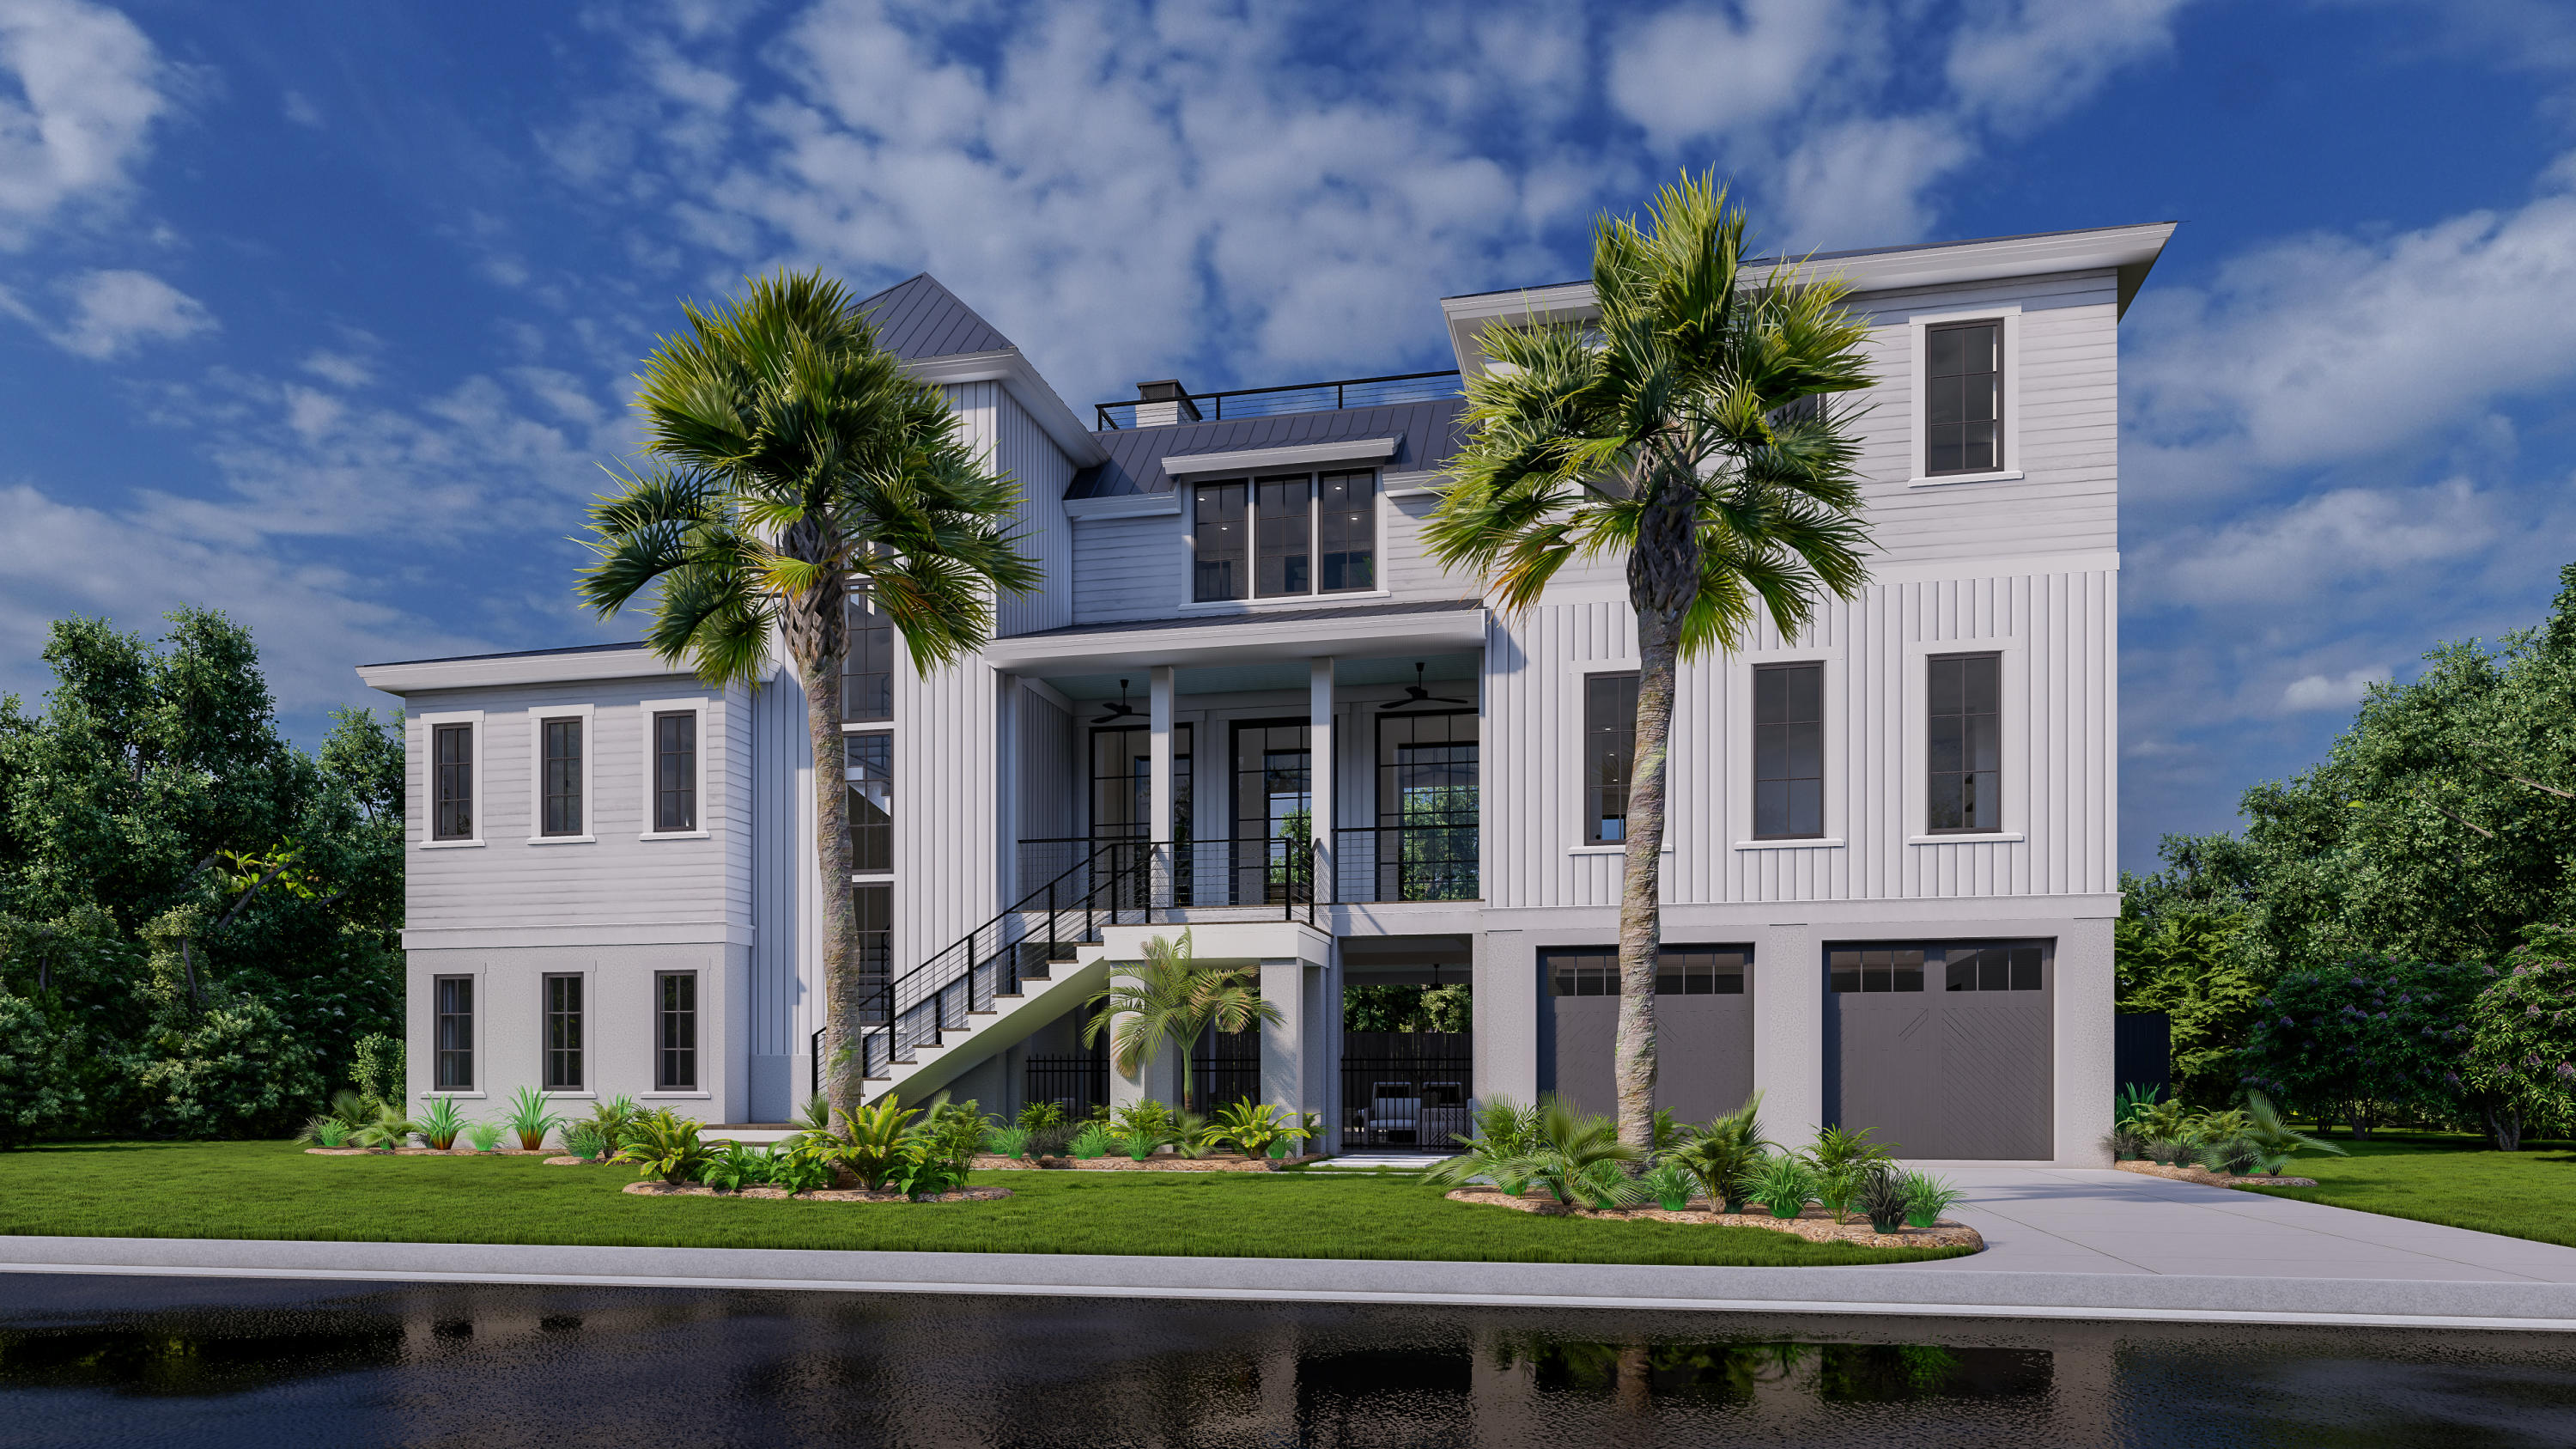 Welcome to 622 Carolina Blvd, your perfectly situated island retreat, just 2 short blocks to the beach! Custom built island home w/pool estimated to be completed June 2022. Come live the island life & relax to the sounds of the ocean on loggia by the fire or gaze at the stars from your rooftop deck. Modern floor plan features open common spaces while offering private retreats when it's time to unwind. Hosting dinner parties w/ family & friends here is a breeze w/expansive kitchen + scullery & state-of-the-art culinary setup! Family room offers exceptional gathering space w/wall of glass doors that lead to porch. Guest suite on main level & 4 BR/3BA + sep den upstairs offers the perfect layout for hosting family & friends. 10' ceilings, elevator to all floors, 2 car garage + golf cart door. Beachy modern vibe with a neutral coastal color palette, pool, rooftop deck & superb outdoor living space create a sense of relaxation for true island living! Enjoy a turn key set of plans with each and every fine detail pre-selected by top design firm to make your transition to the beach easy breezy! Other fine finishes that translate to sophisticated yet relaxed, low maintenance coastal lifestyle include metal roof, cement plank siding and wood flooring throughout. Home also features an outdoor shower to wash the sand away after a sunny day at the beach! Grappa porch flooring is yet another fine detail which withstands the salt, sun & sand with low maintenance and long term durability. Location cannot be beat situated walking distance to the beach yet a short bike ride to fabulous island restaurants. This prime location is also less than 10 miles to Historic Downtown Charleston where you can enjoy fine dining & shopping, arts & entertainment in a world class city lined with cobblestone streets, antebellum homes & horse drawn carriages! You can truly have it all right here at 622 Carolina Boulevard!